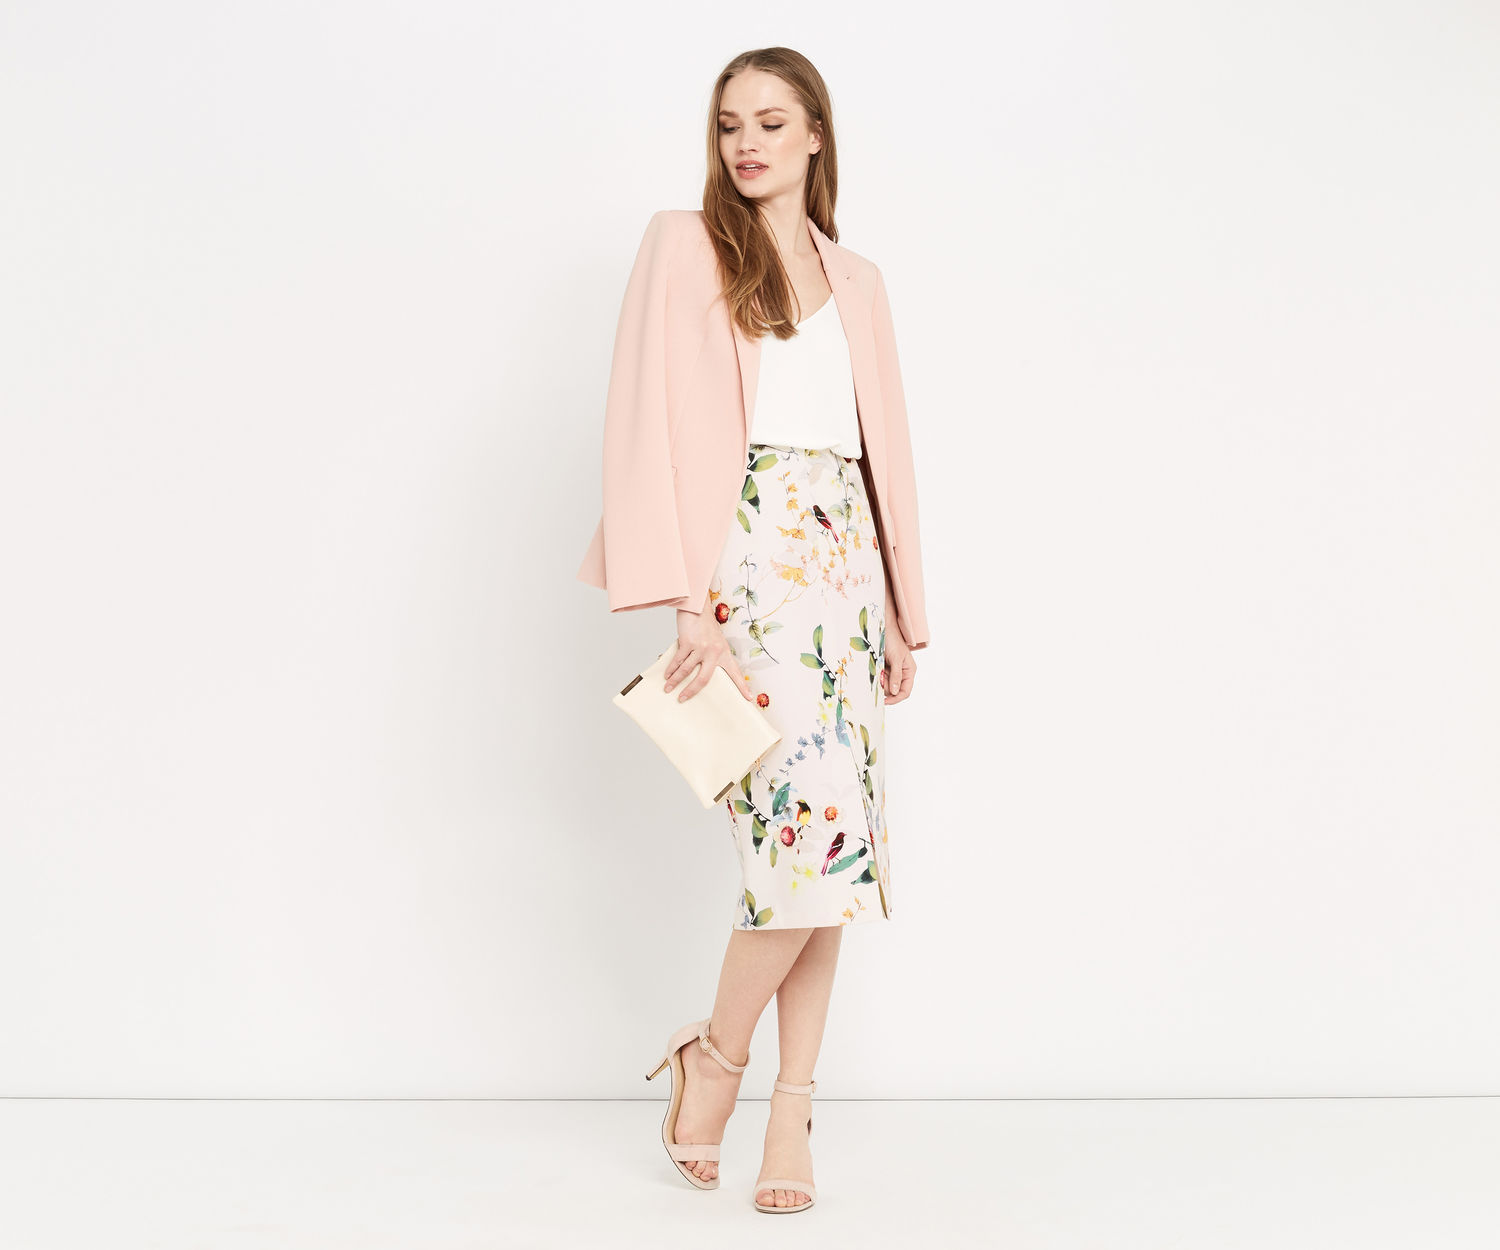 Wedding guest outfits and accessories 2017 - Love Our Wedding